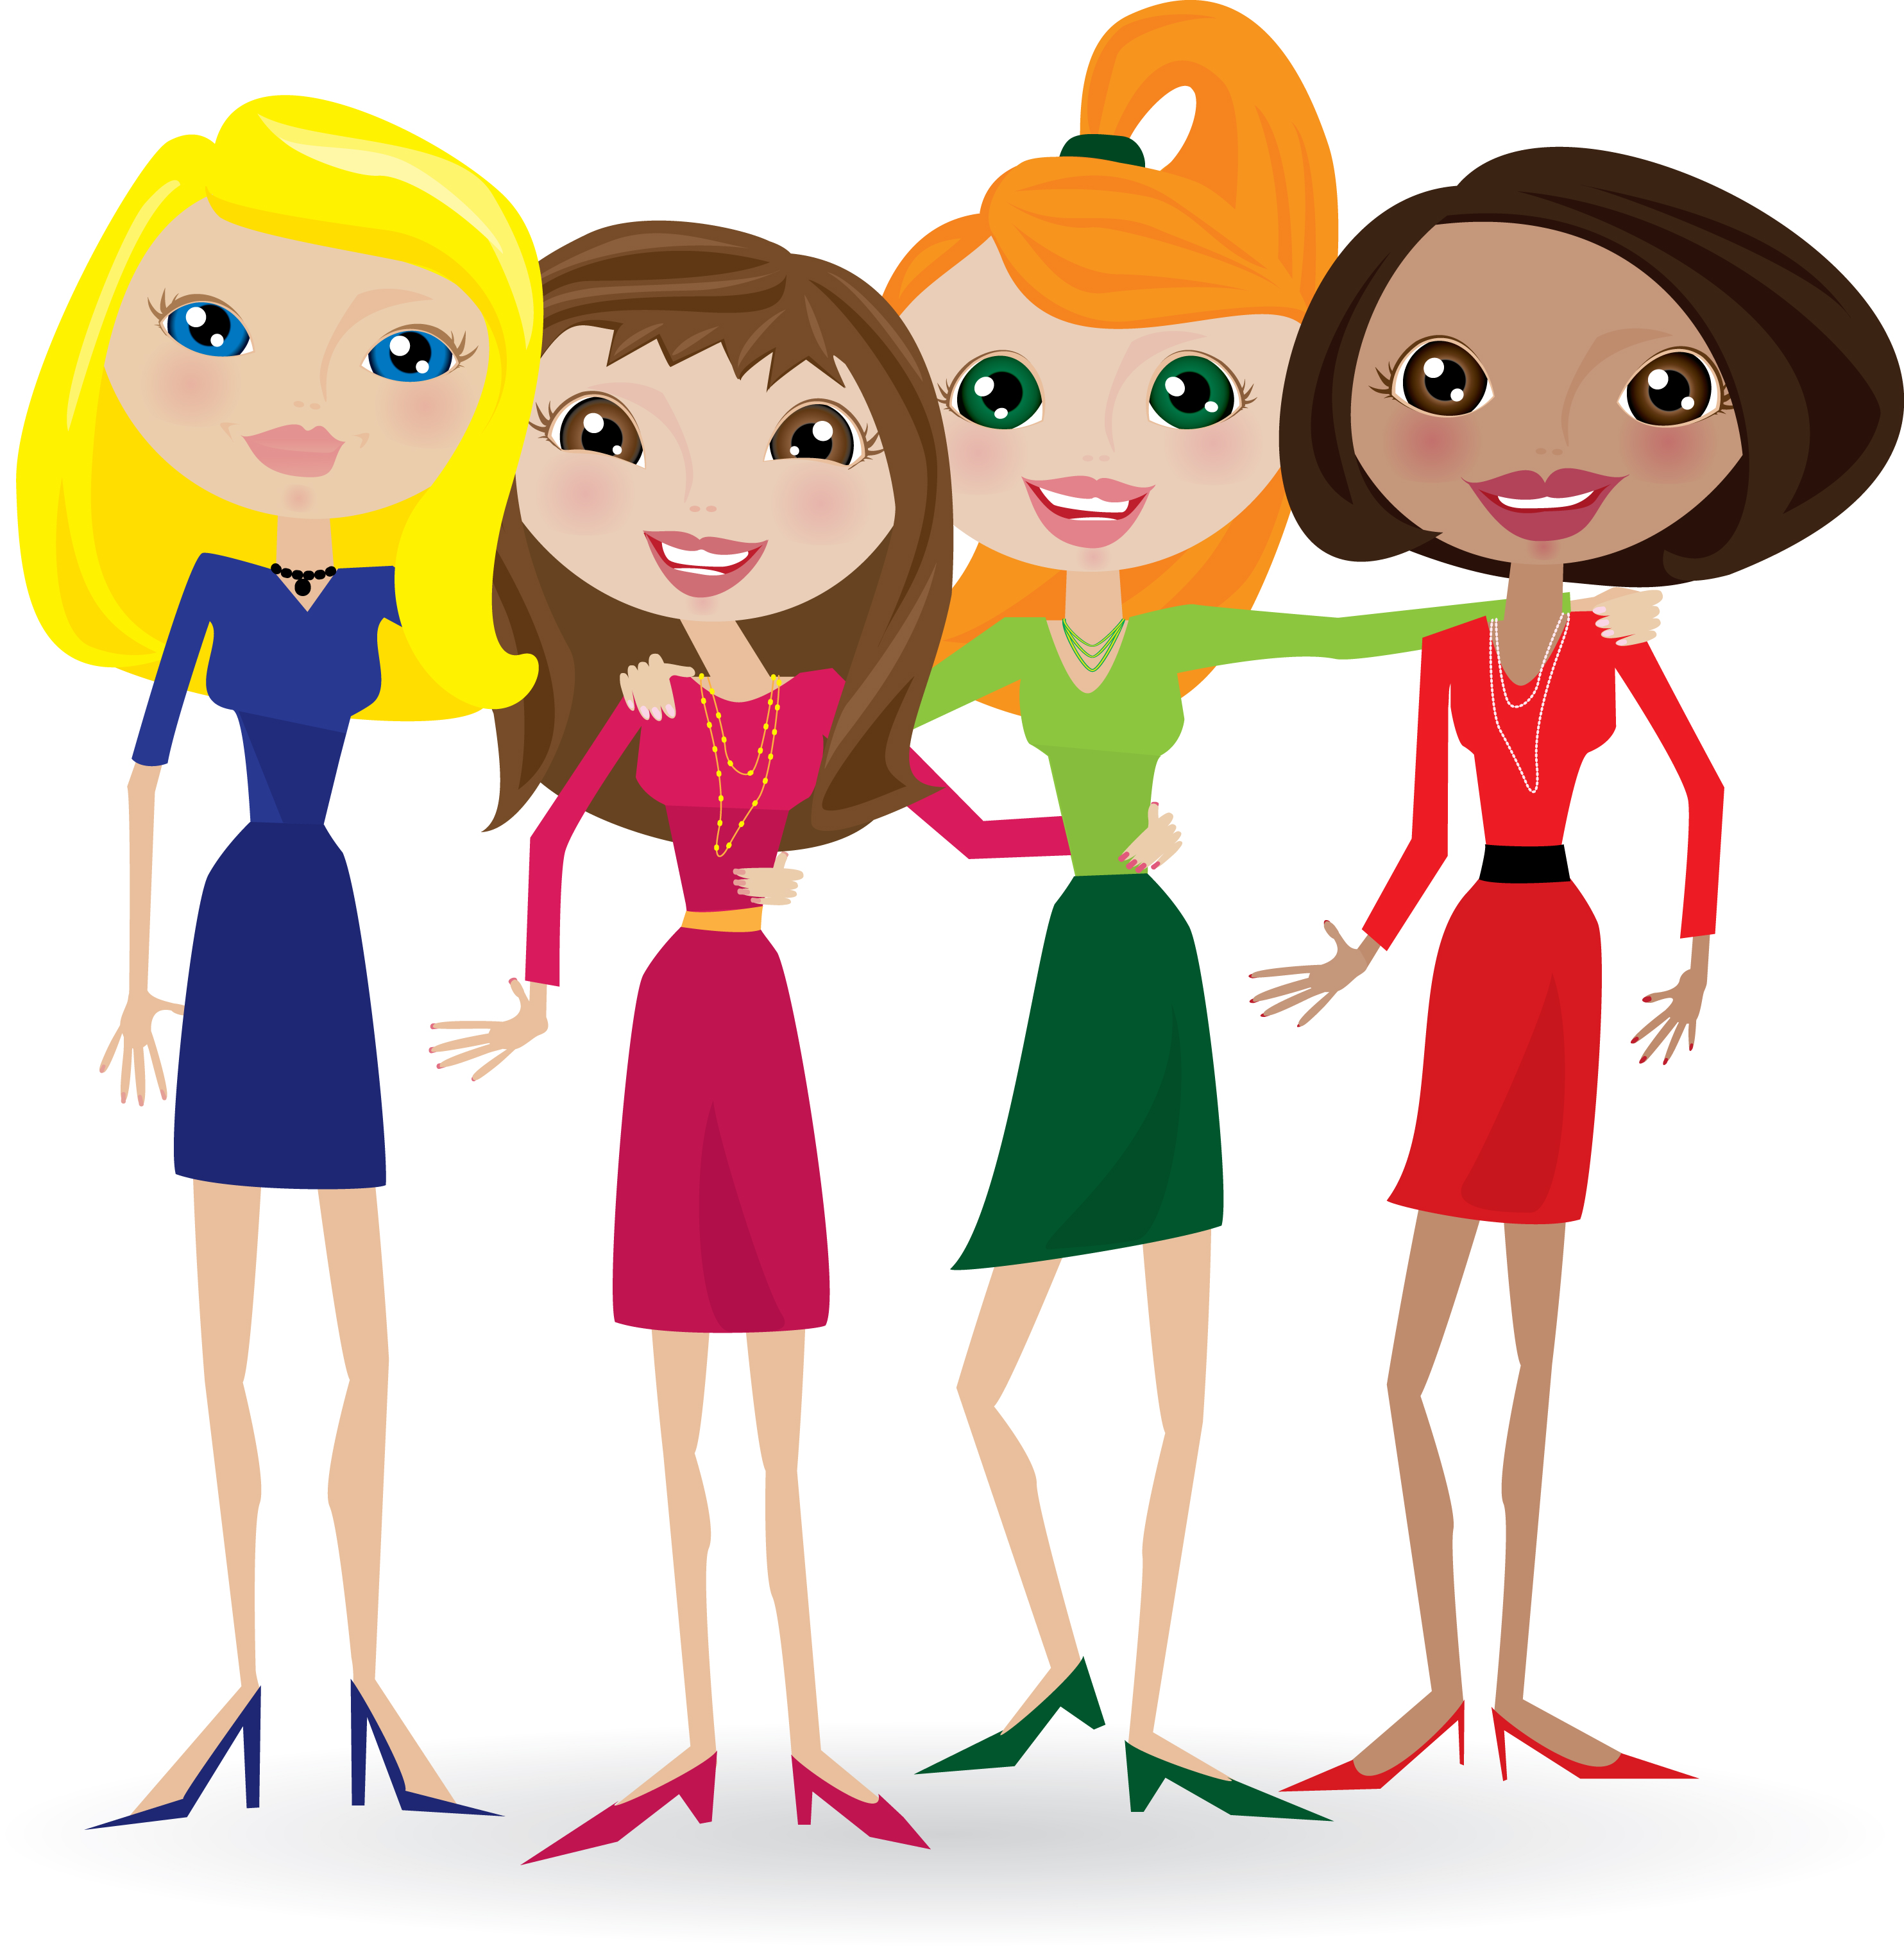 Female group of friends clipart